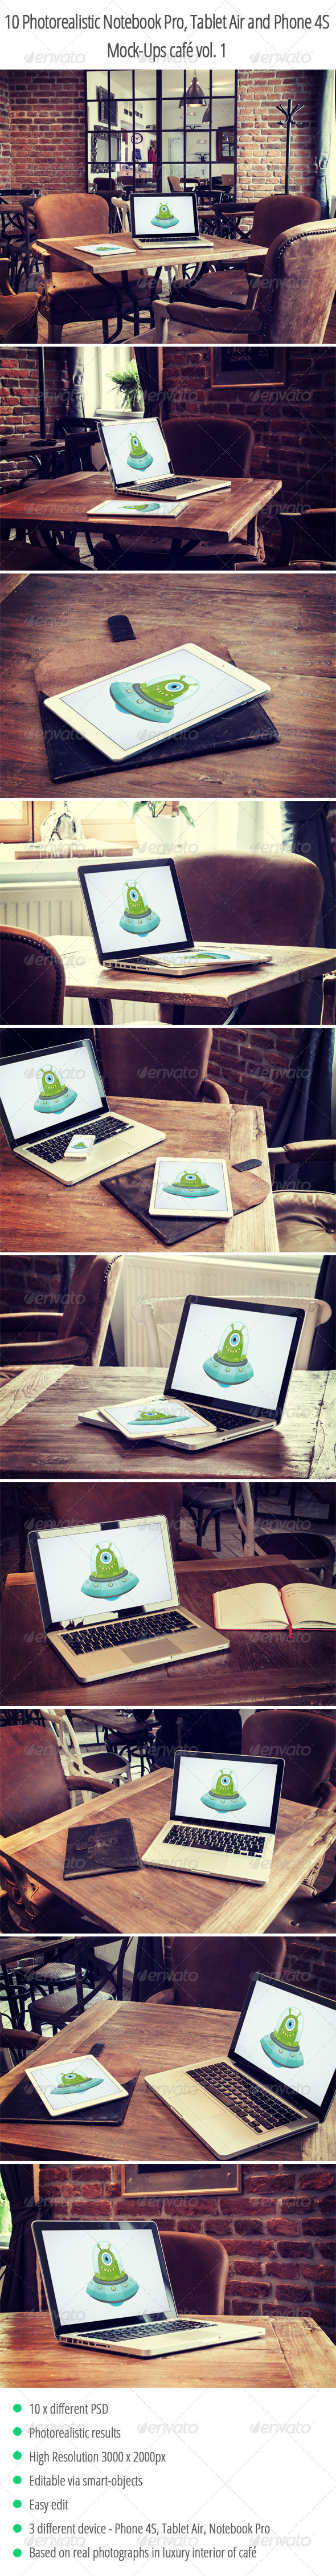 GraphicRiver 10 Photorealistic Device Mock-Ups in Cafe Vol.1 6652634